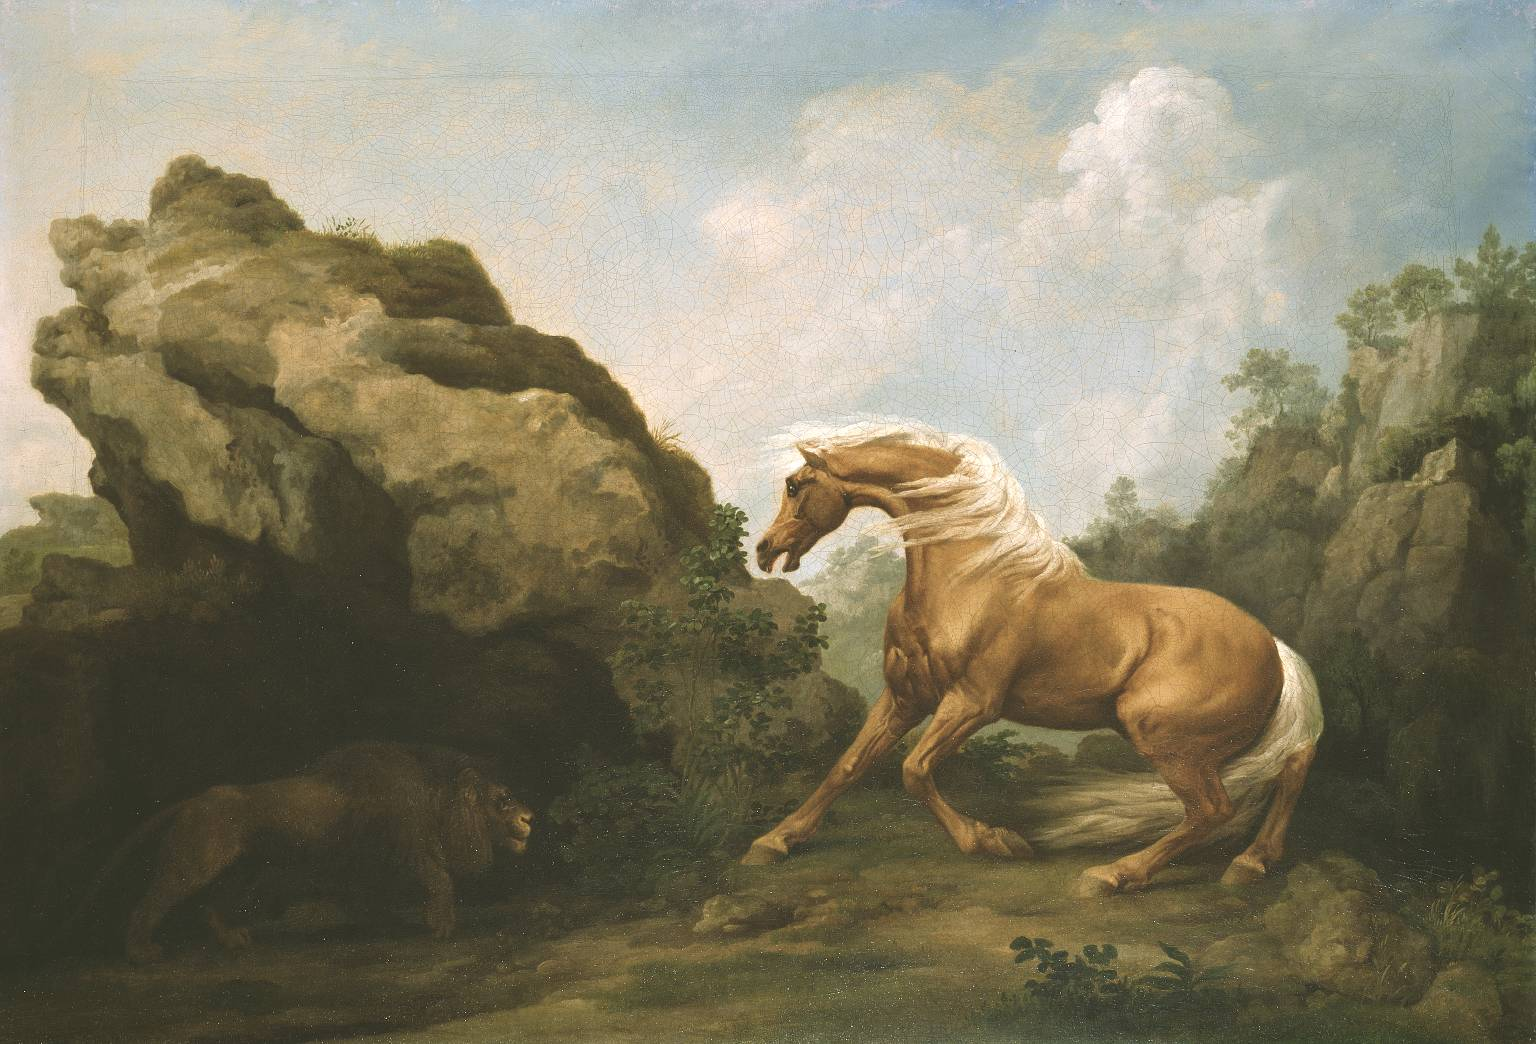 2. George Stubbs, Horse Frightened by a Lion, 1794 - Tate Britain, London